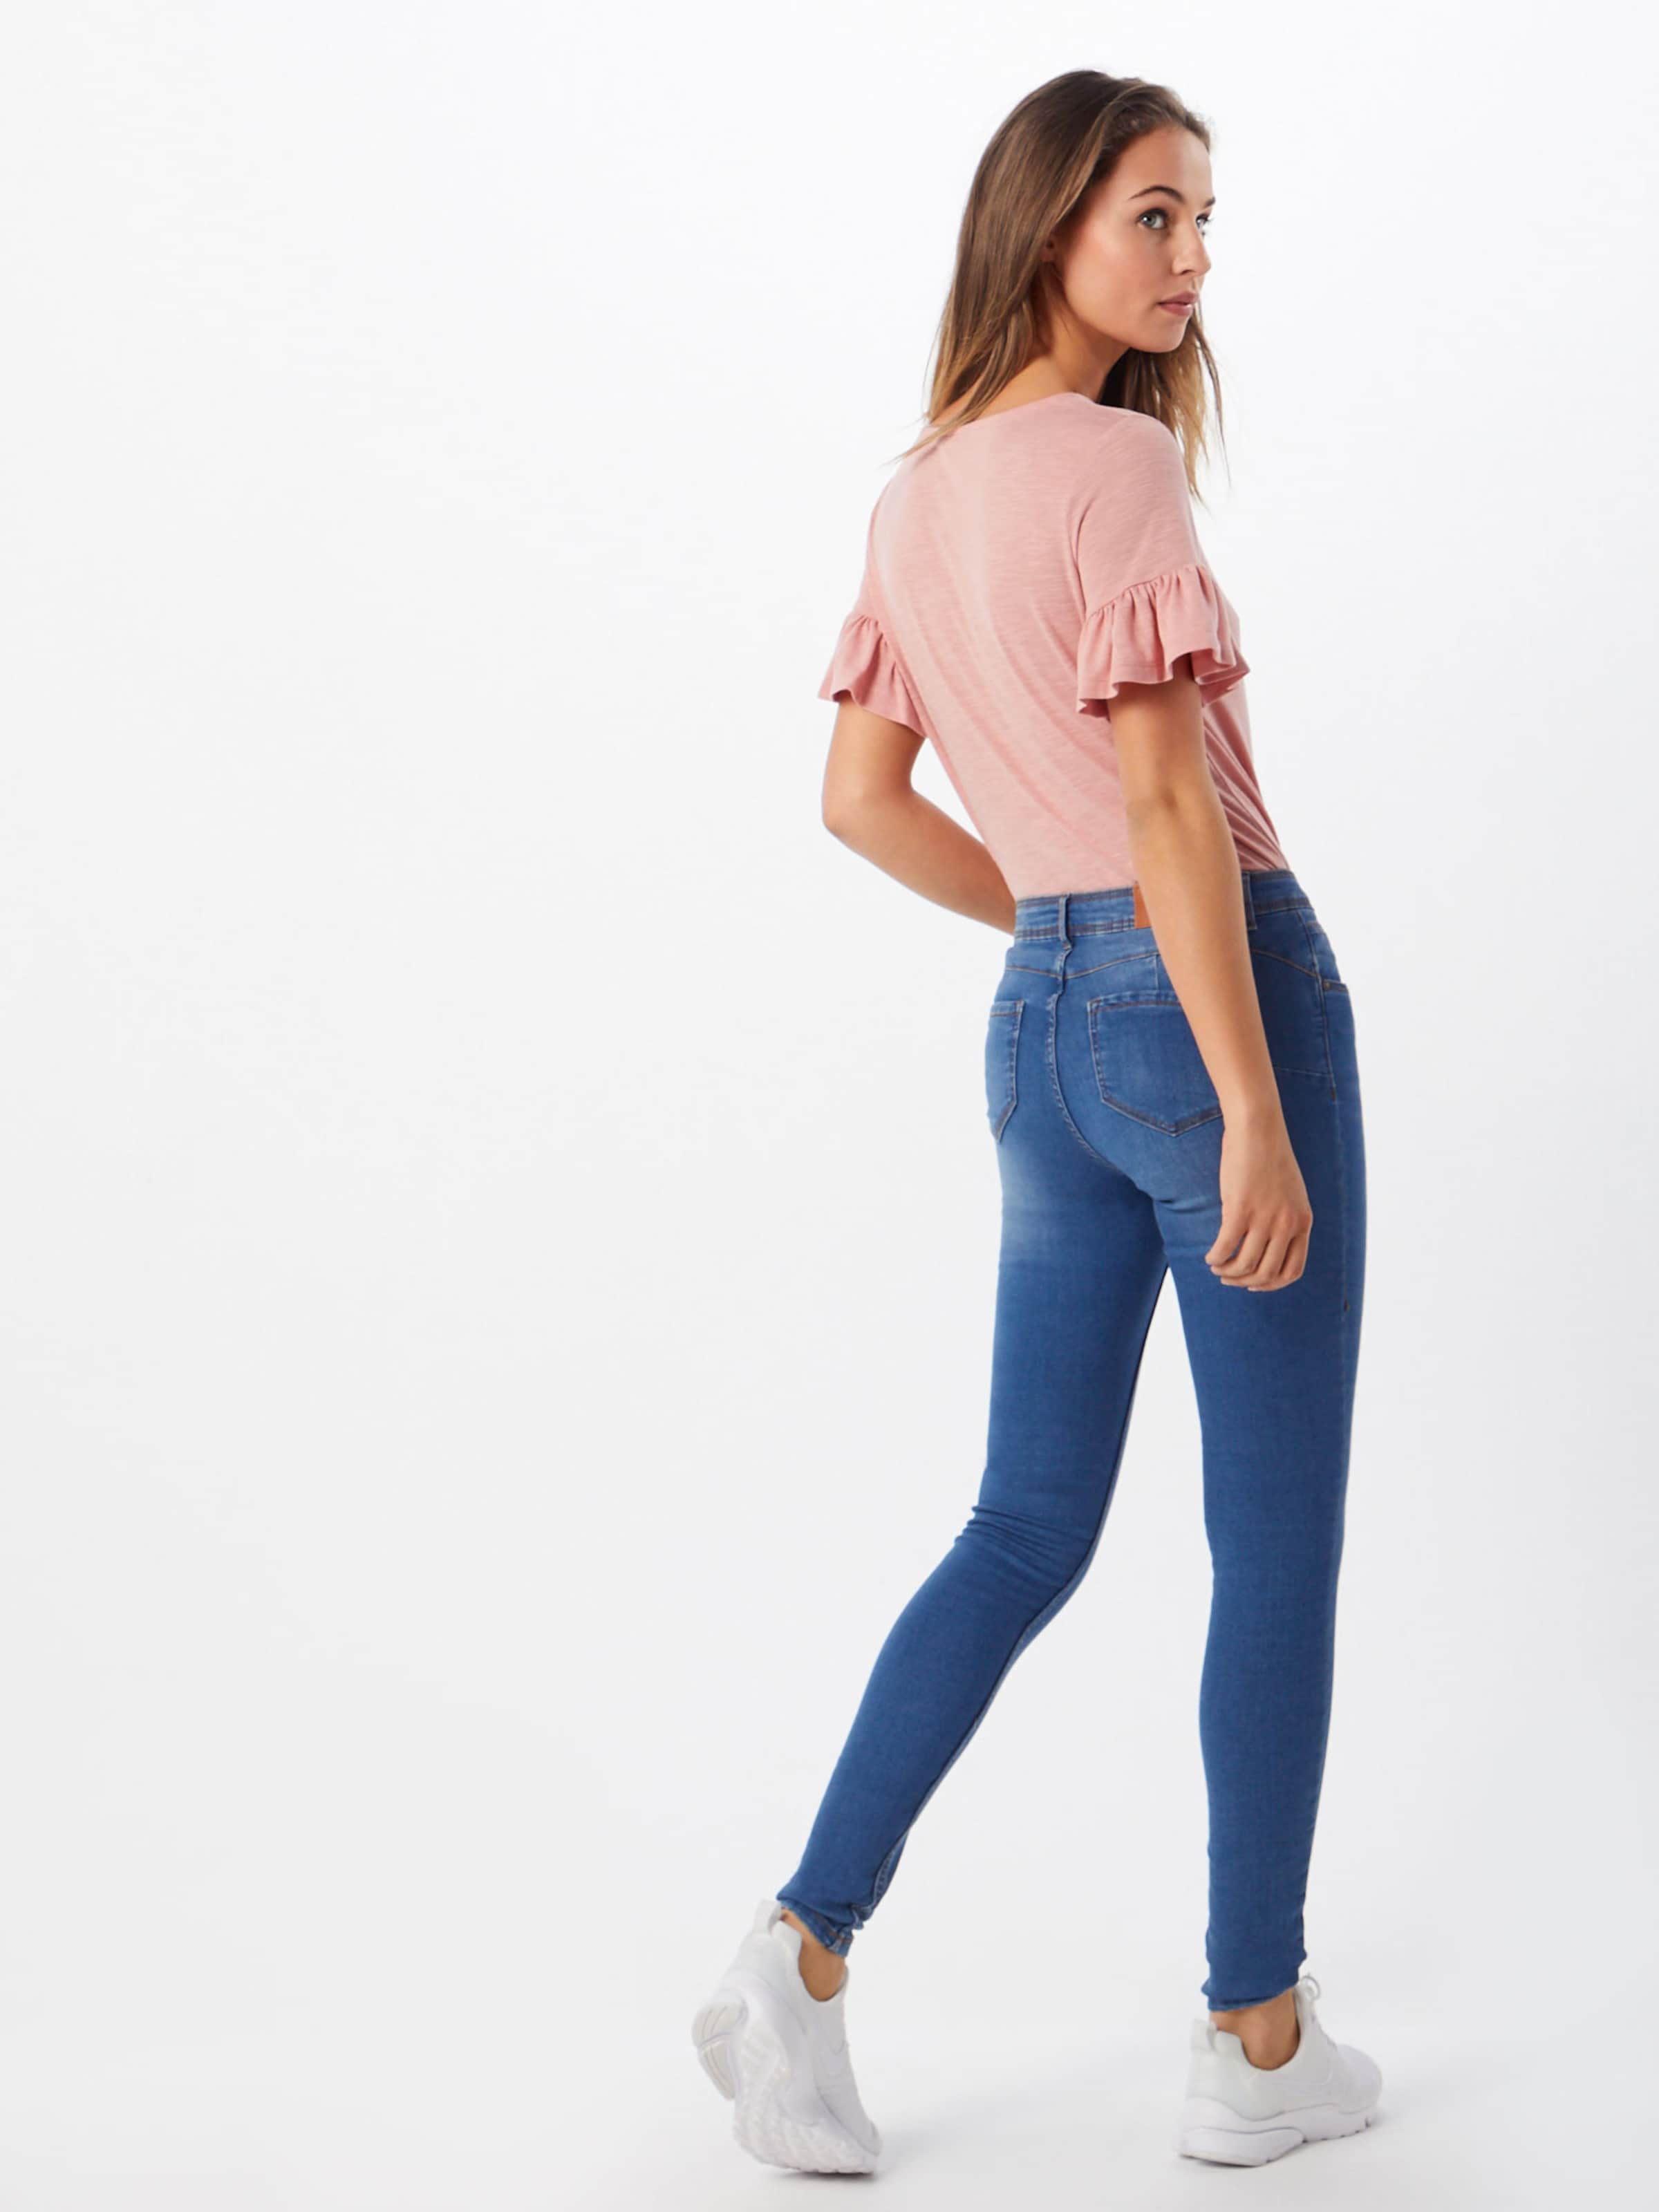 May 'jen Blauw Jeans In Noisy Shaper' Denim wOPk80XZNn